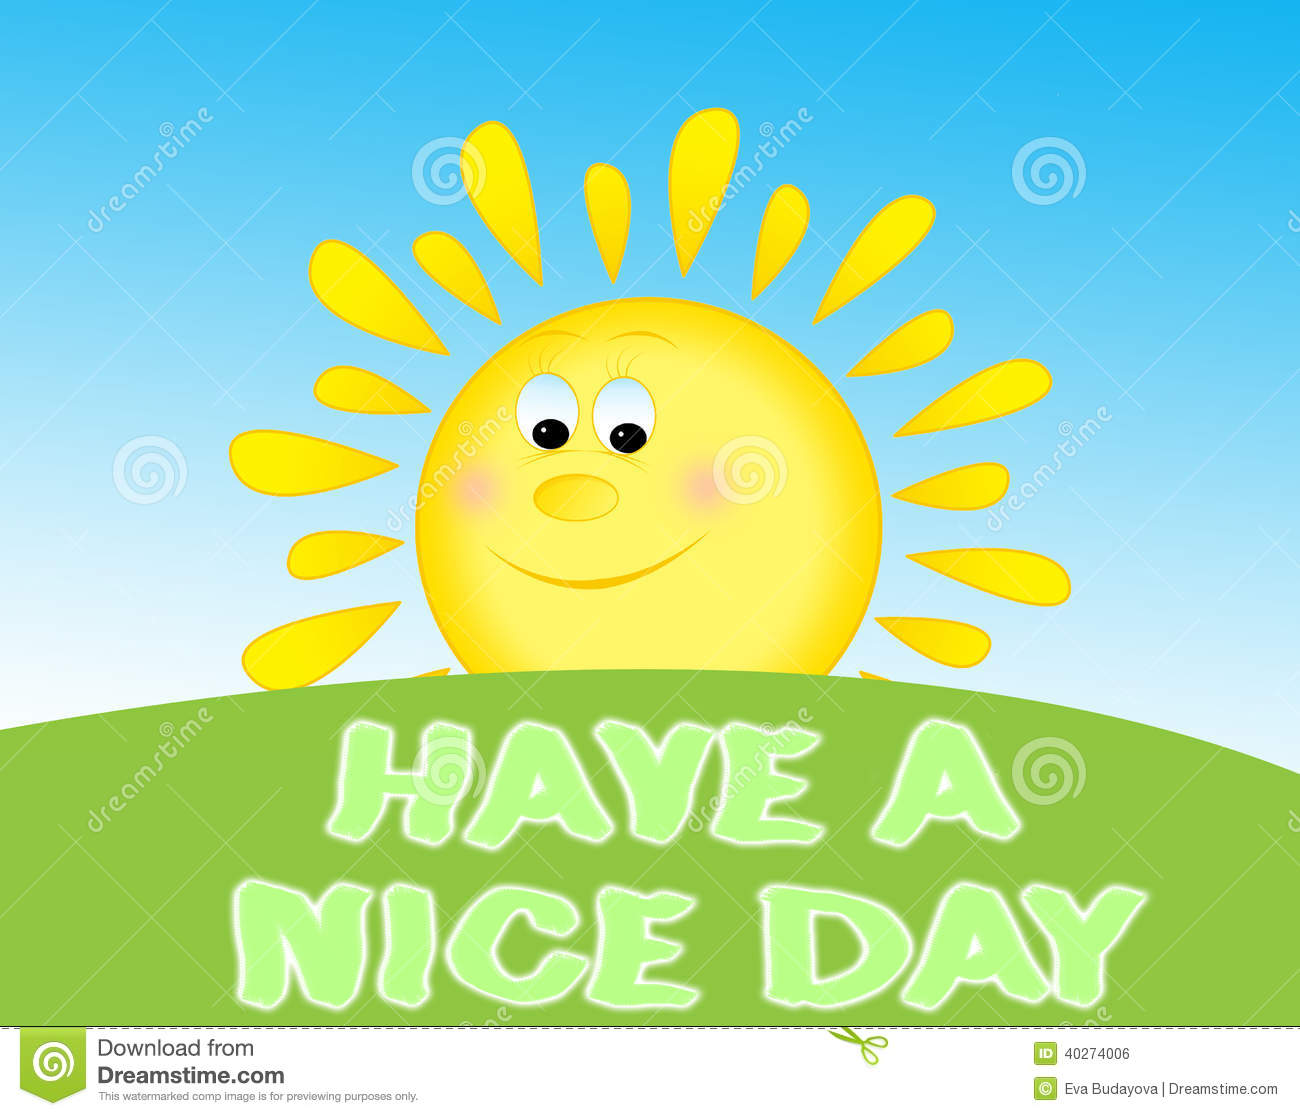 Have A Nice Day Stock Illustration  Image: 40274006